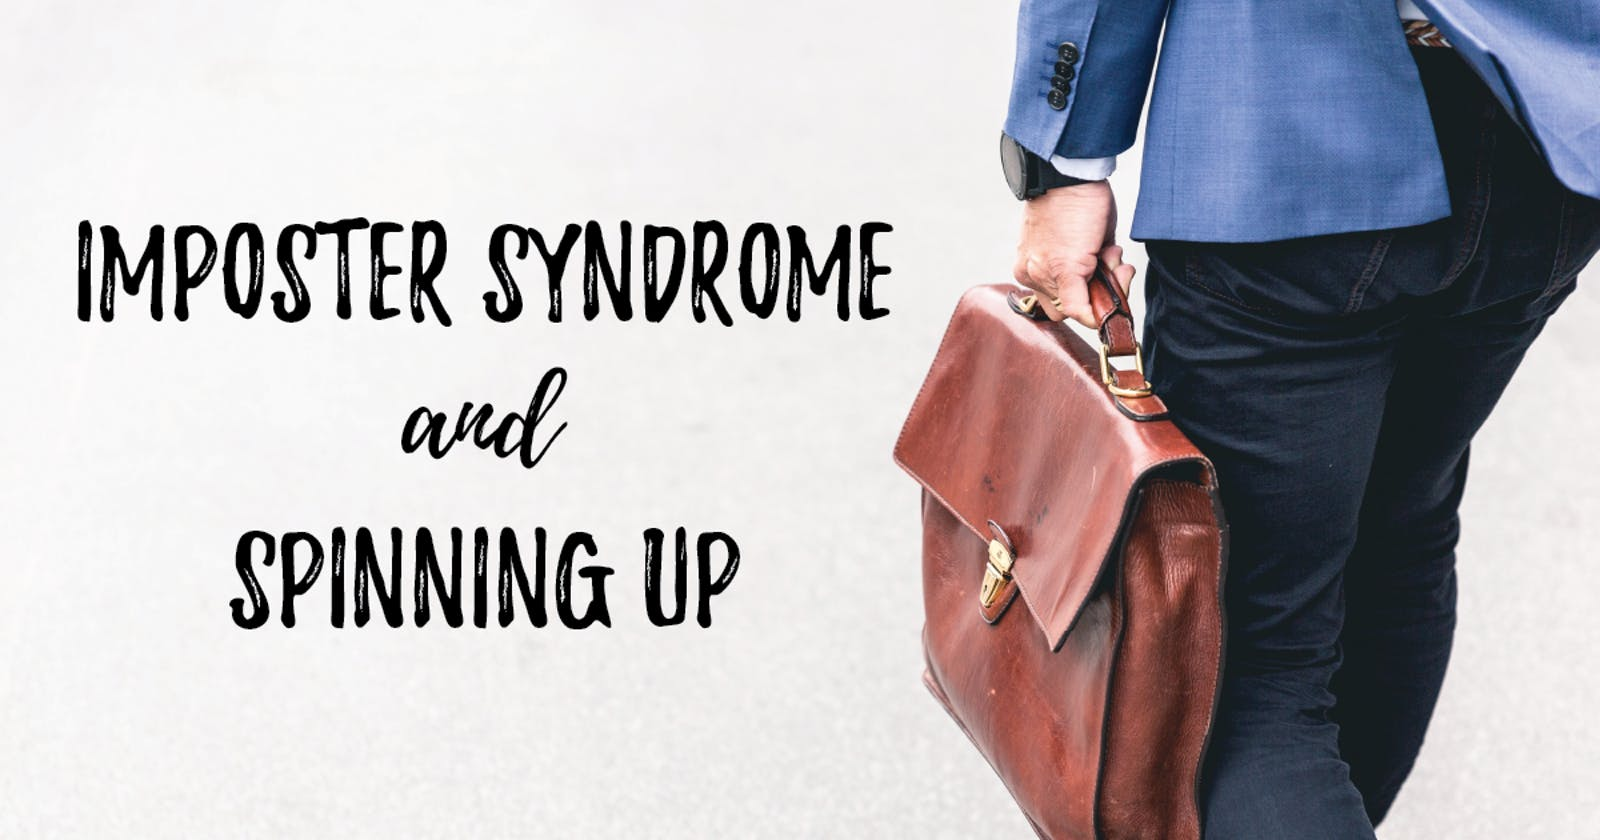 On Imposter Syndrome